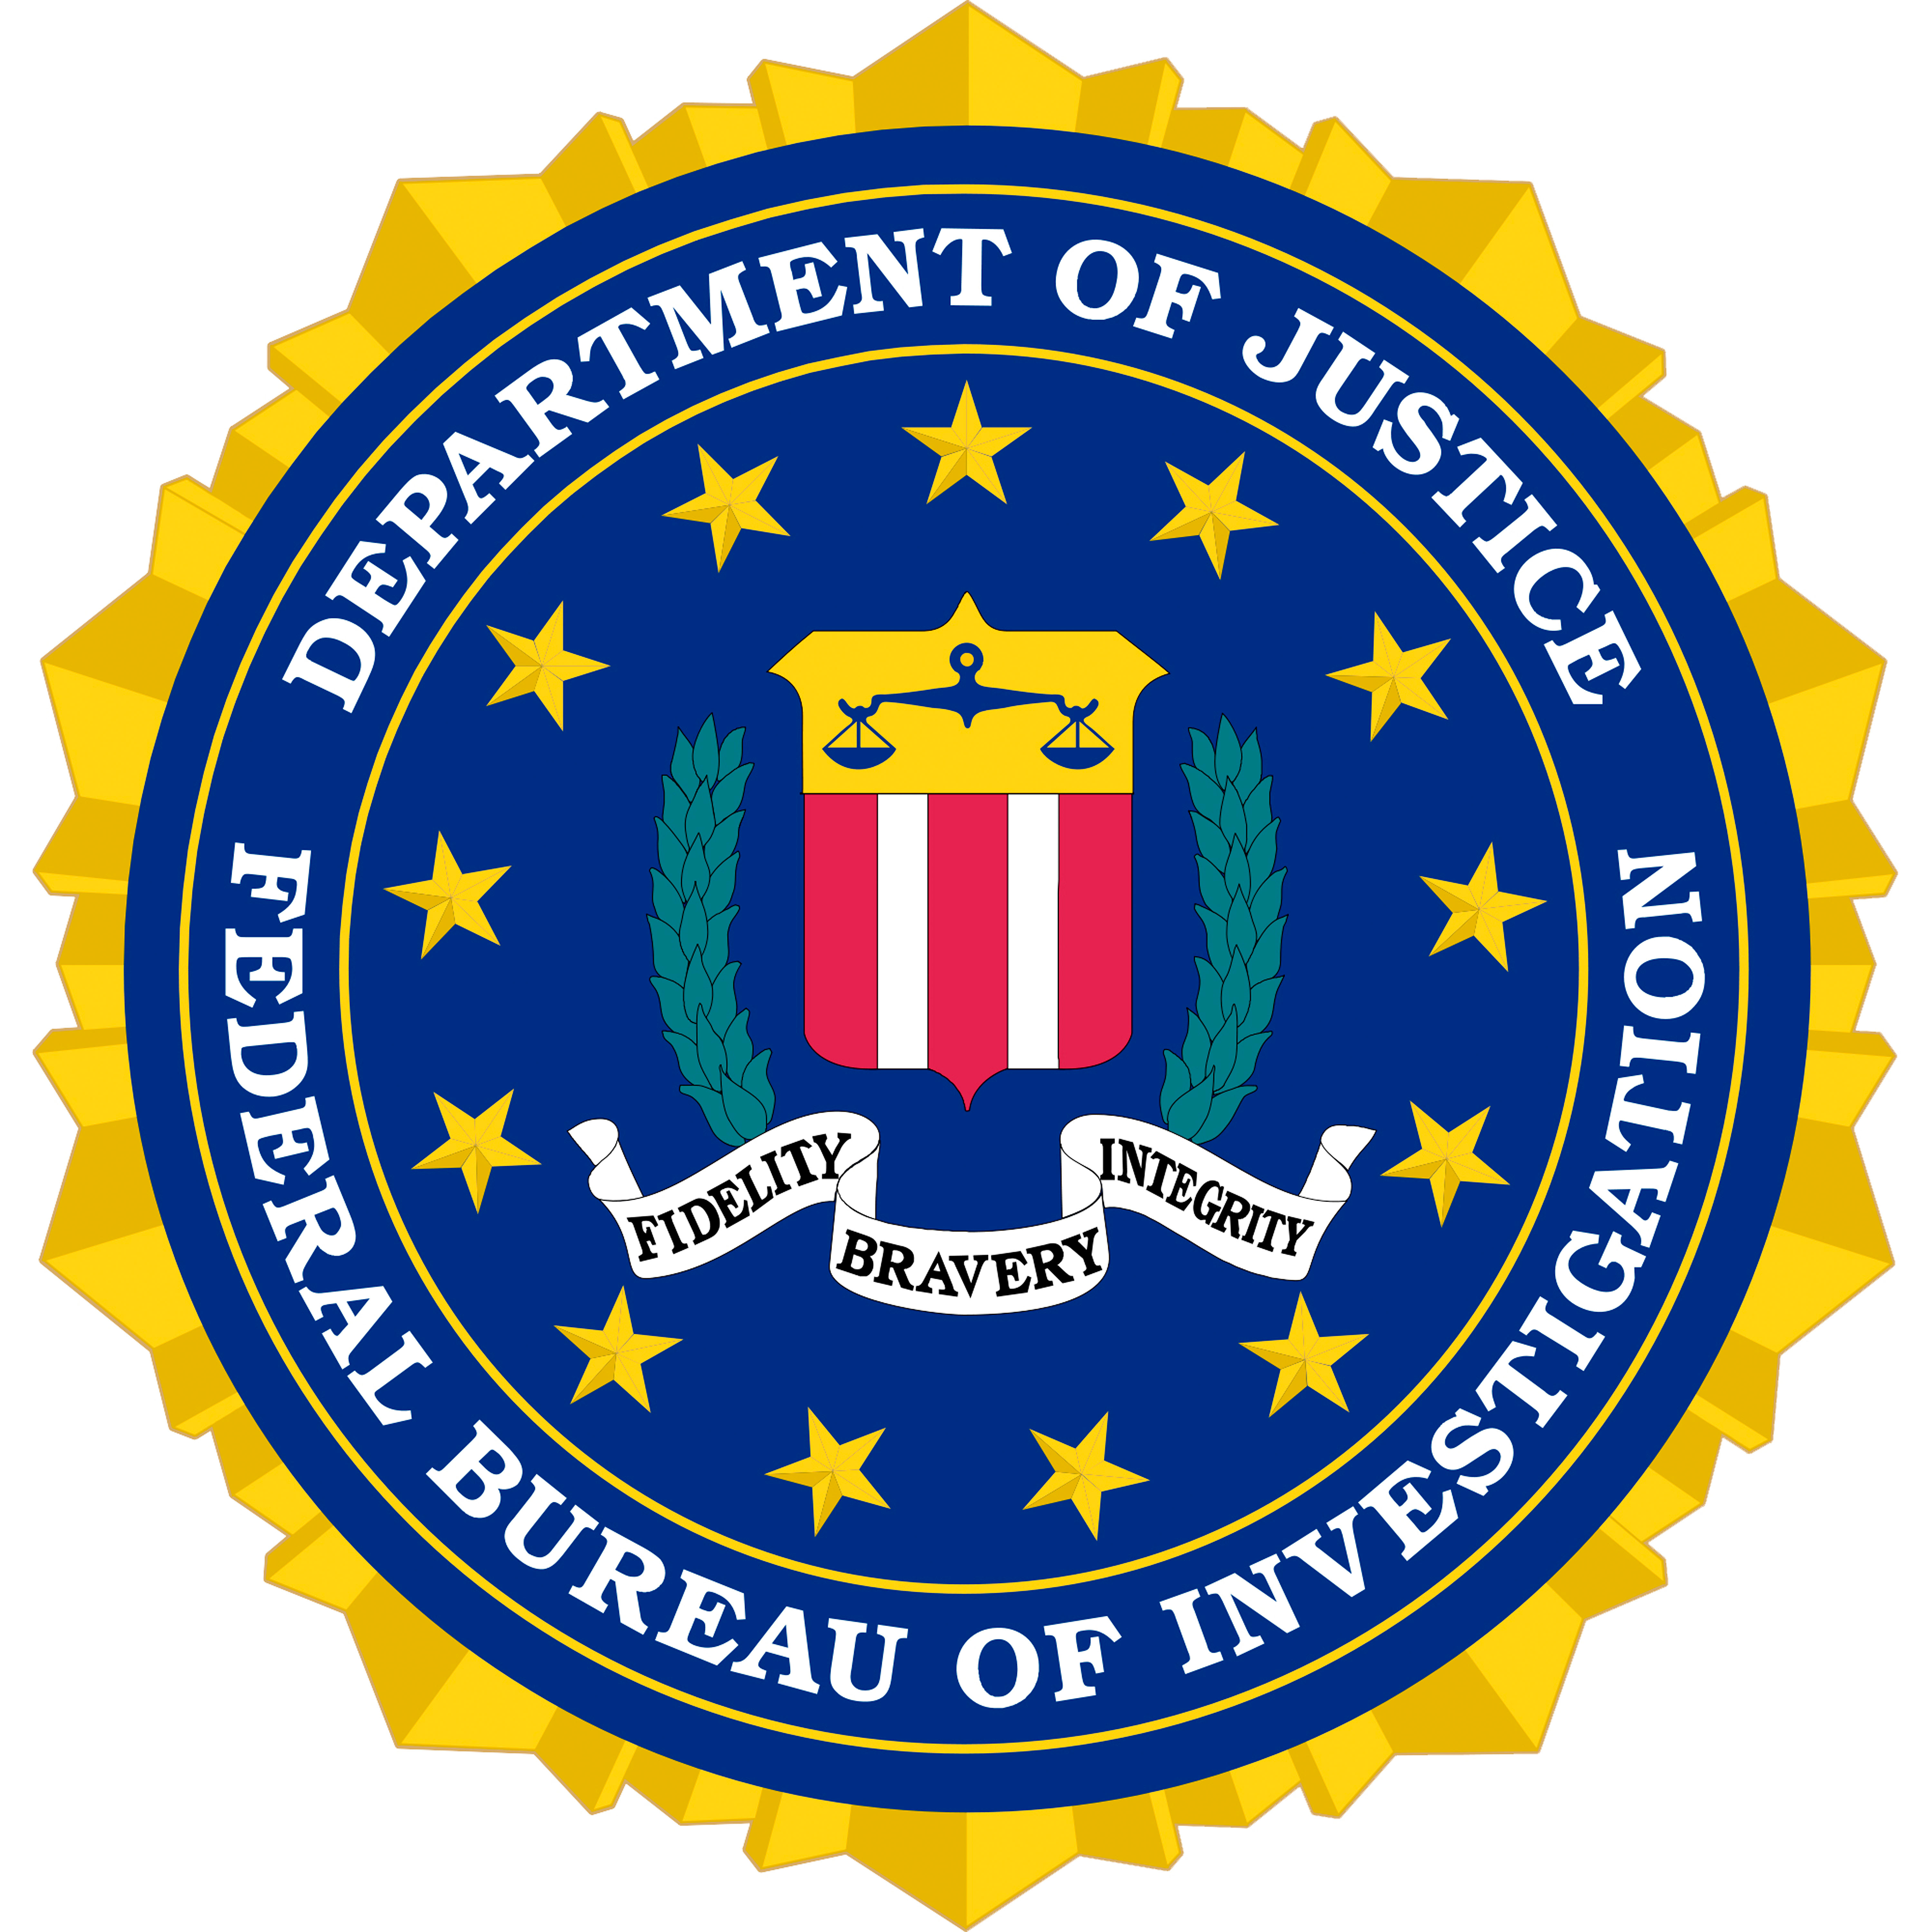 Seal of the United States Federal Bureau of Investigation ...